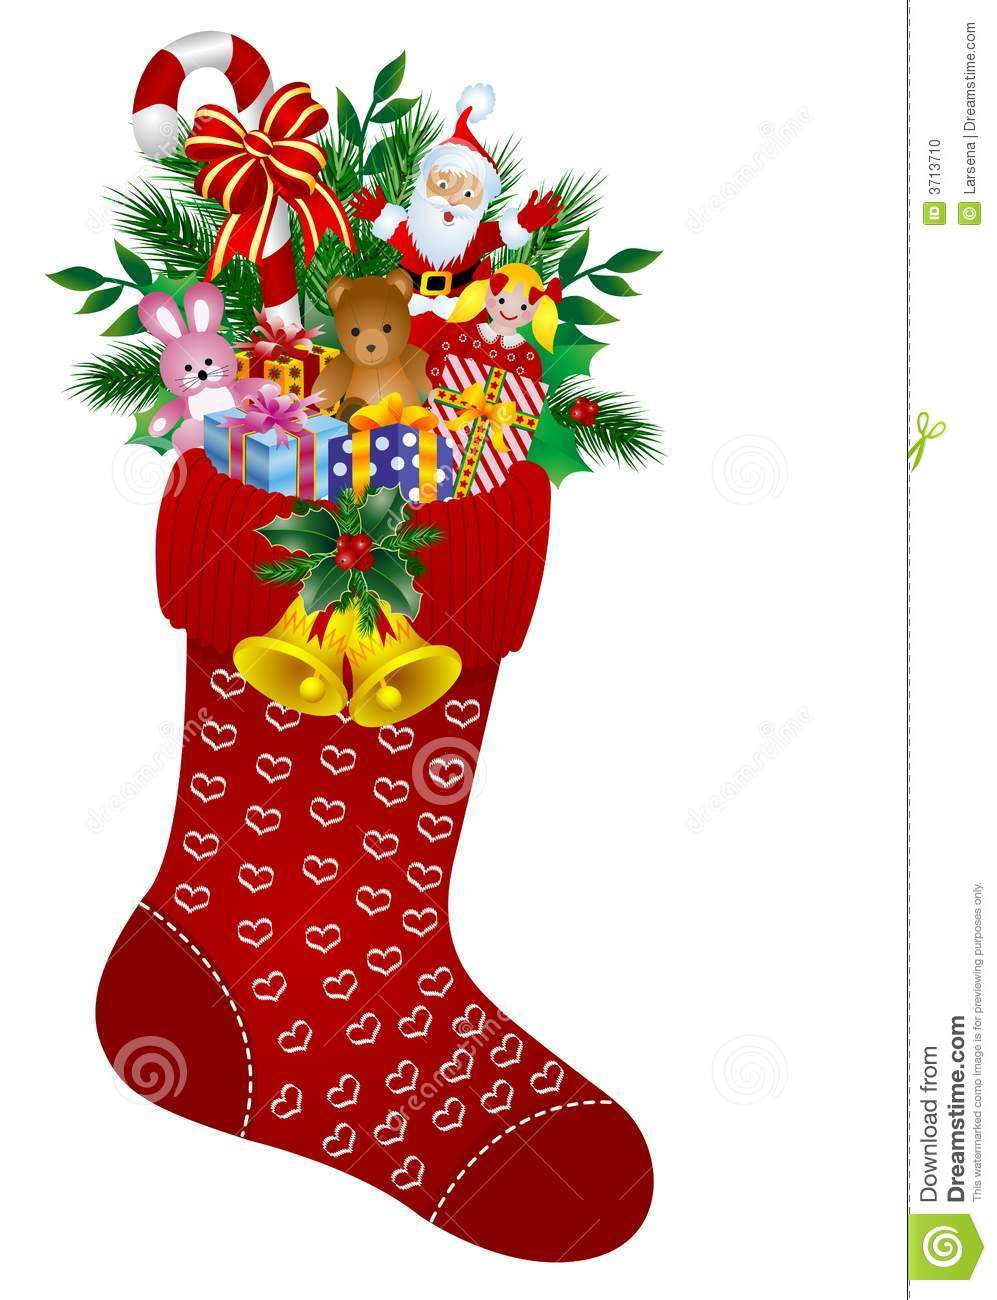 Christmas stockings stock vector. Illustration of pink.